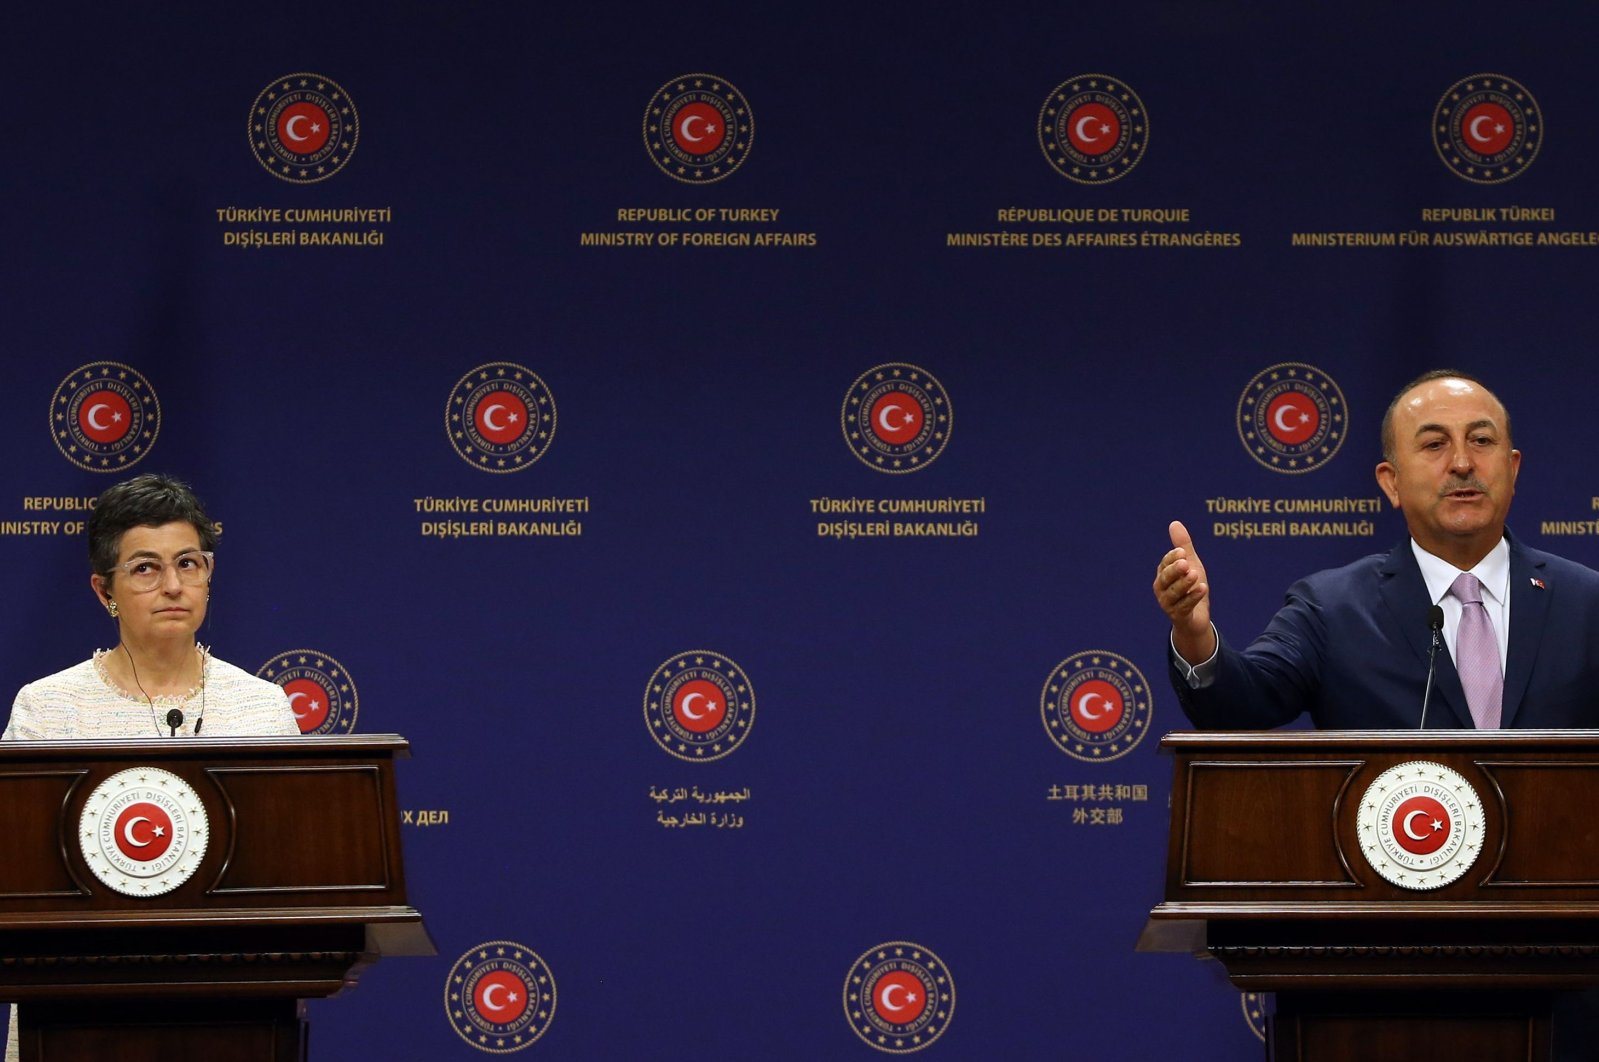 Turkish Foreign Minister Mevlüt Çavuşoğlu (R) and Spanish Foreign Affairs and European Union and Cooperation Minister Arancha Gonzalez Laya (L) hold a joint press conference following their meeting at the Turkish Foreign Ministry in Ankara on July 27, 2020. (AFP Photo)